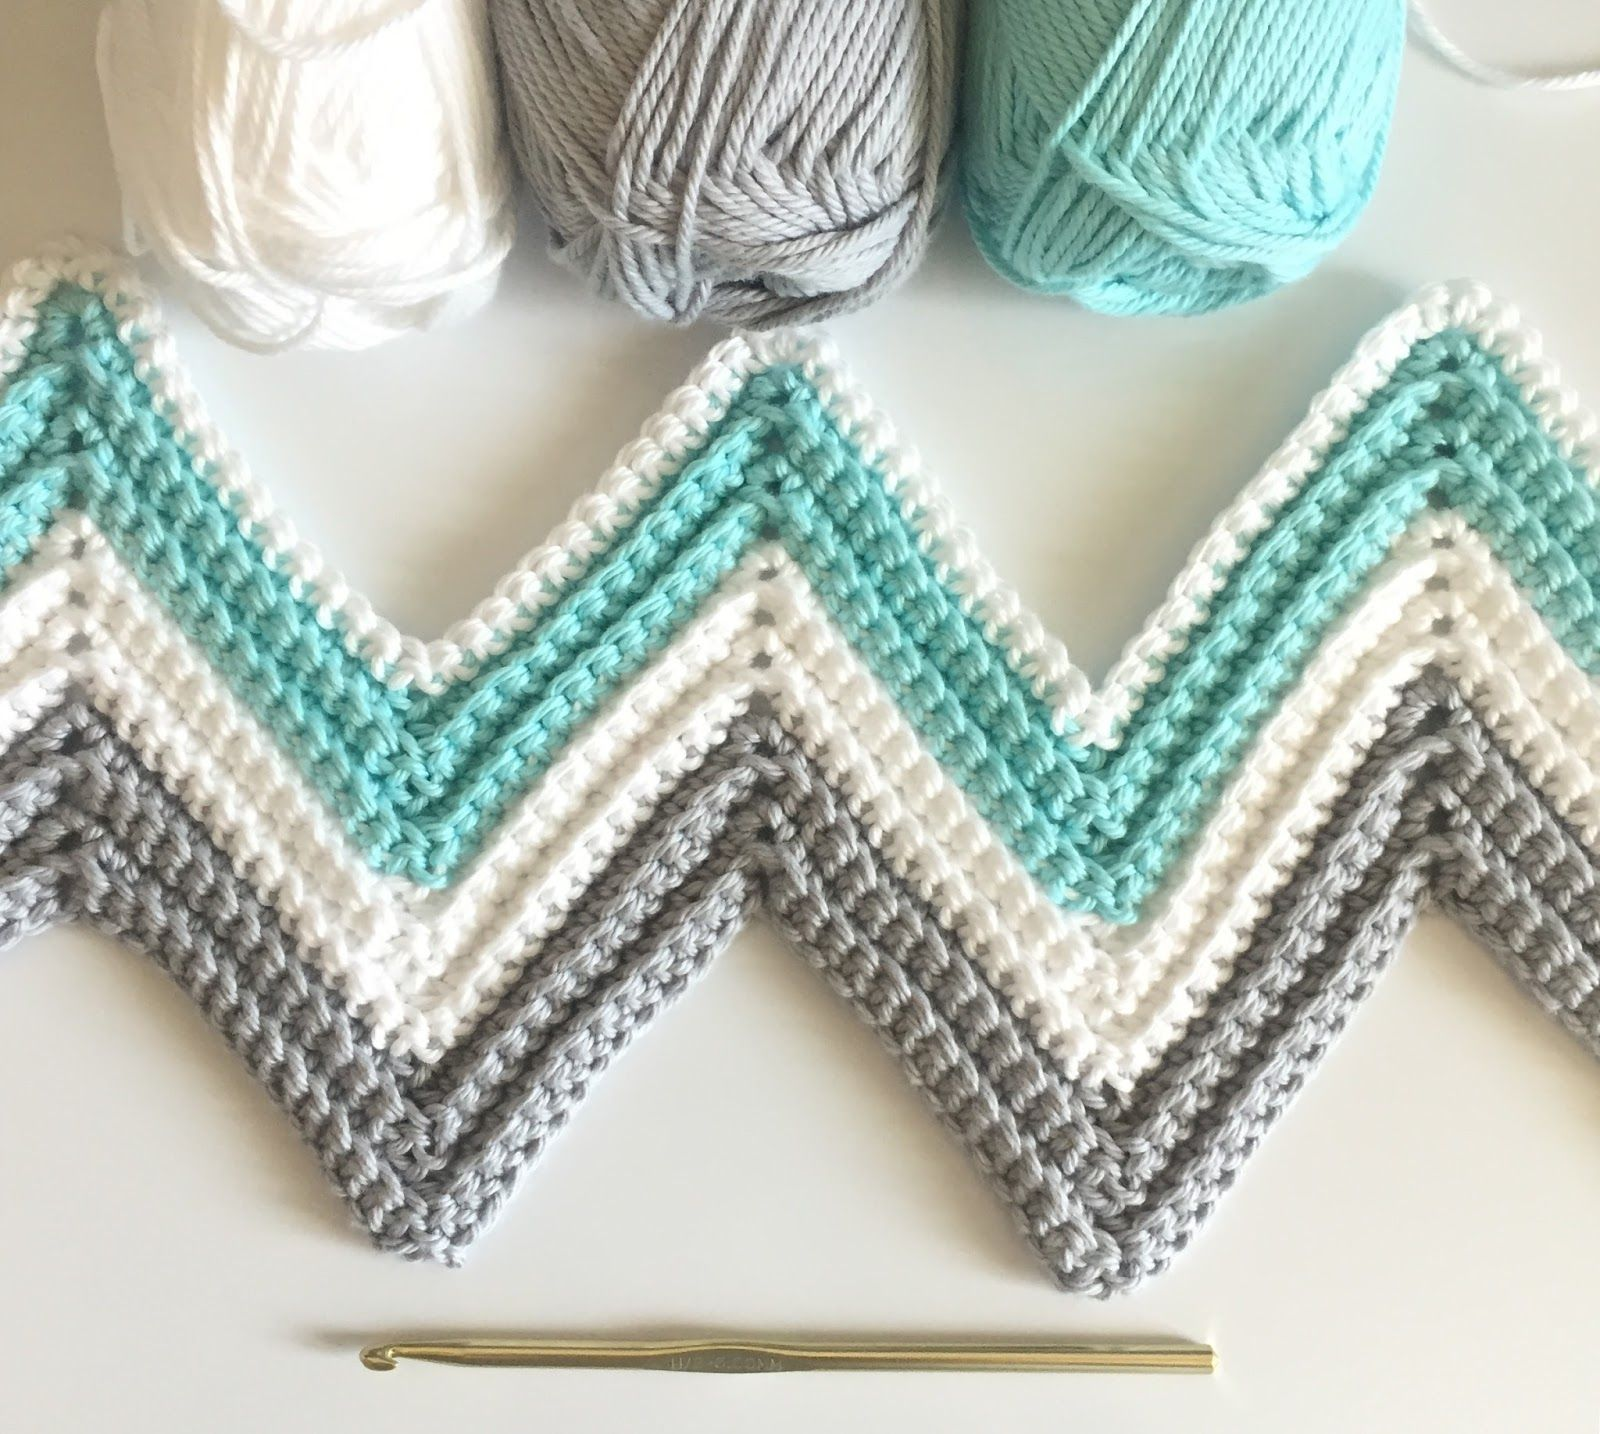 Single crochet in back loop only to get these ridges the colors h hook daisy farm crafts single crochet chevron blanket in mint gray and white the colors for this blanket are heavenly perfect for a new baby boy bankloansurffo Choice Image